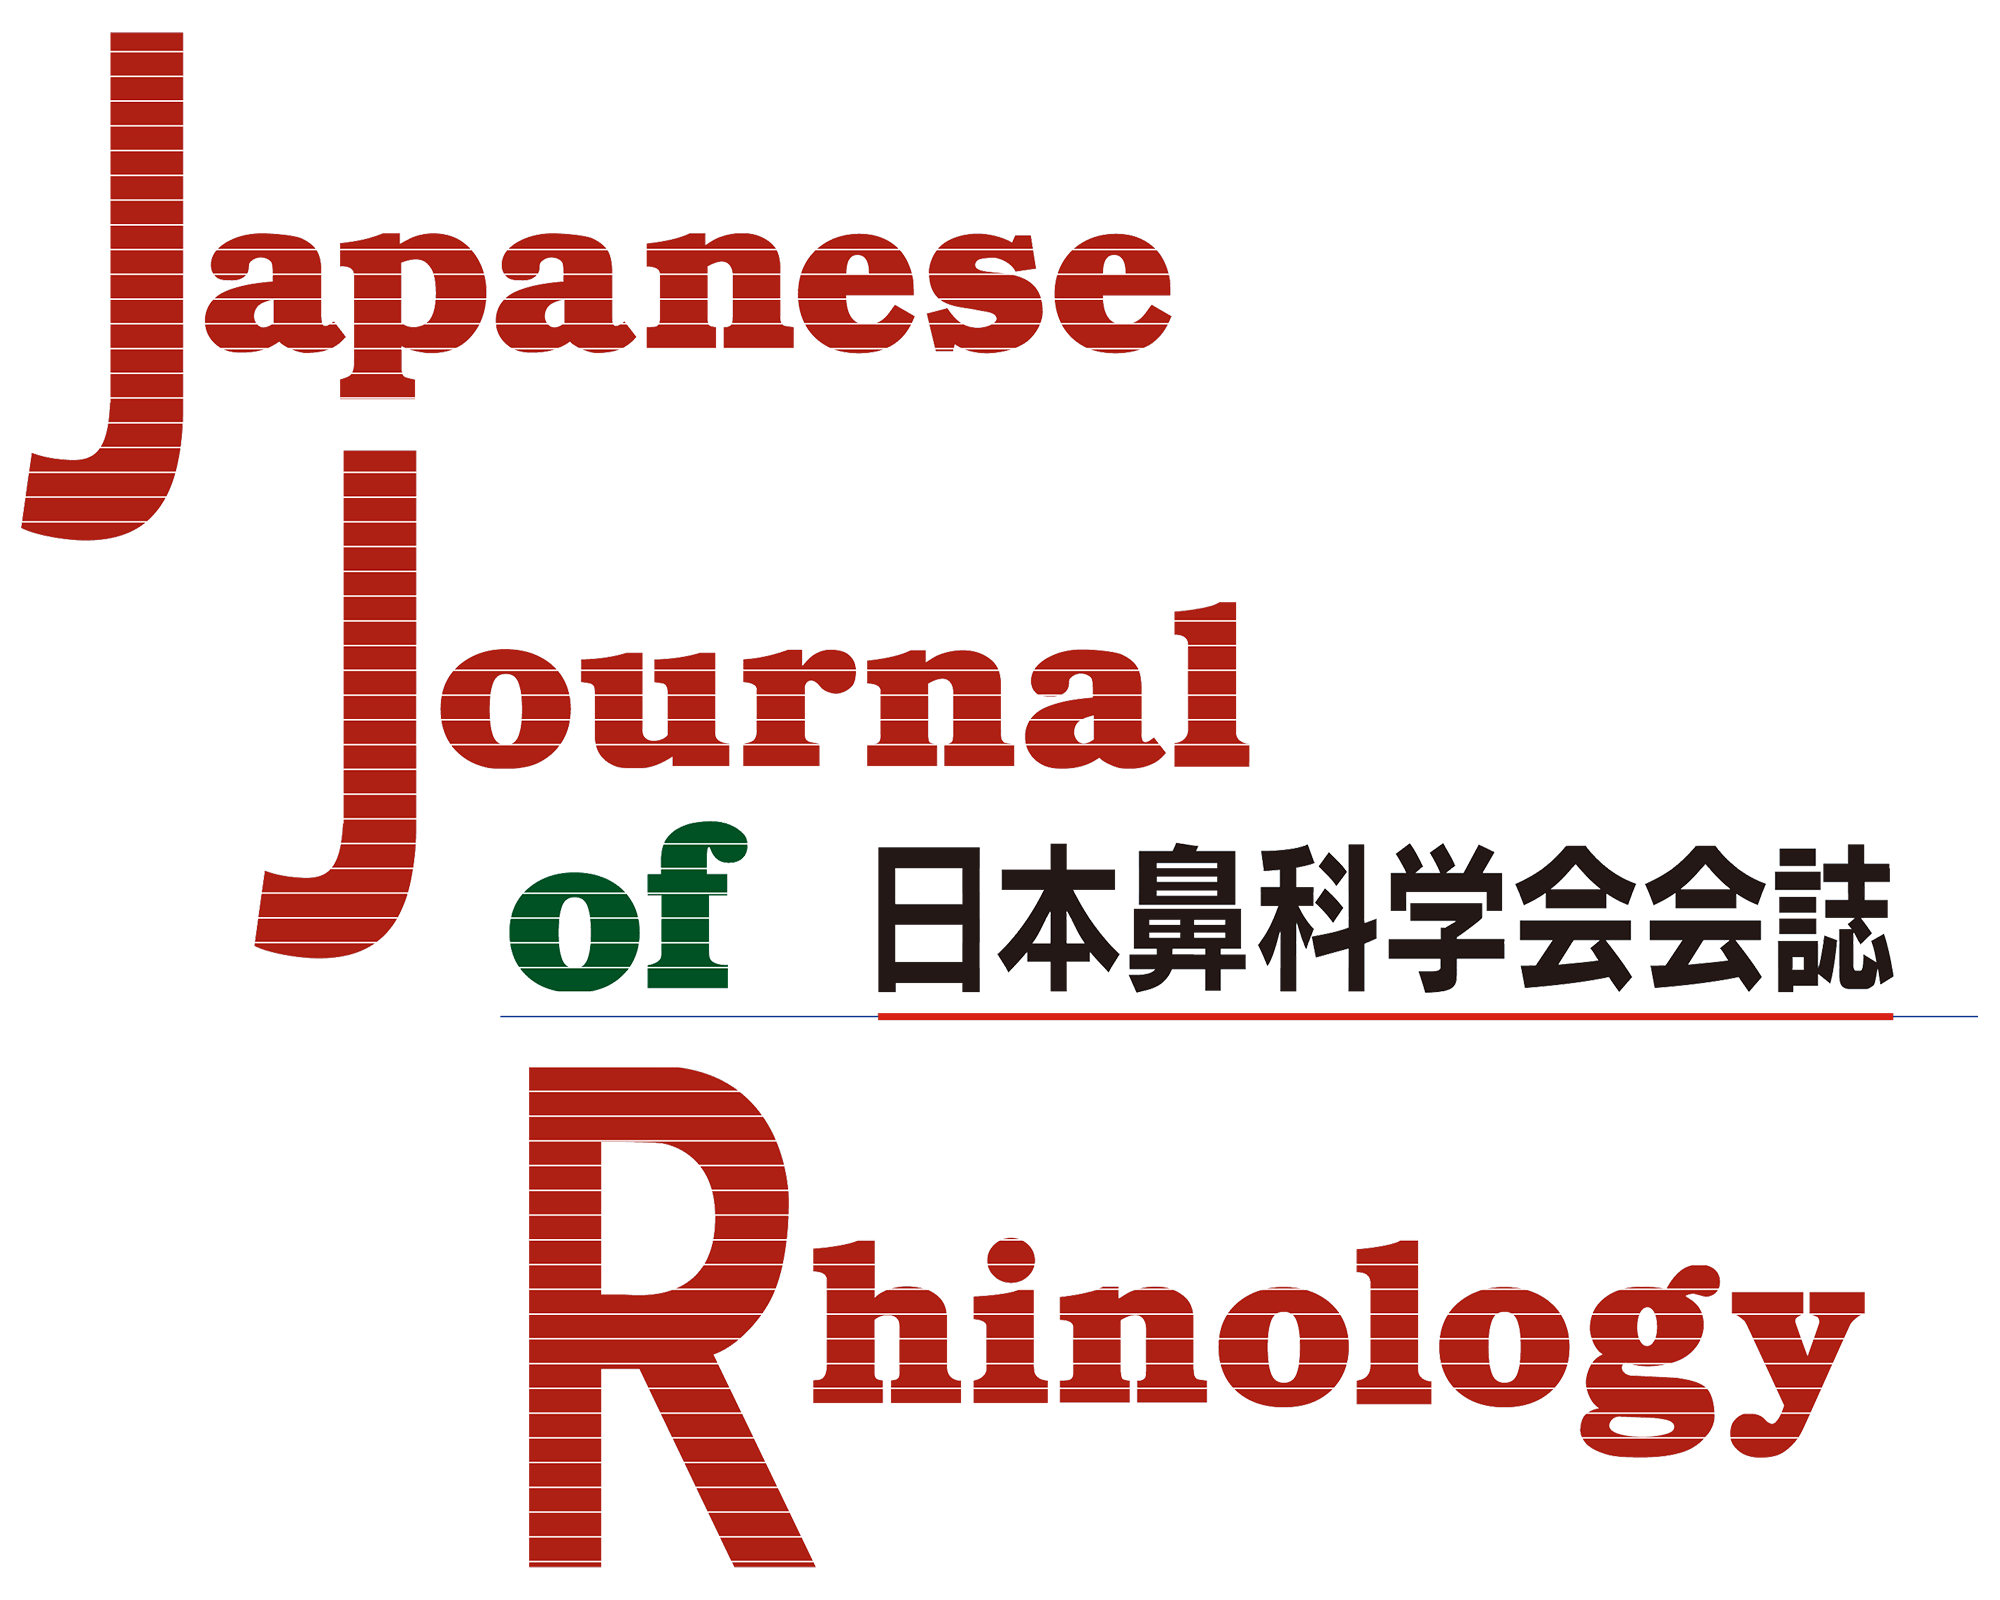 日本鼻科学会会誌 Japanese Journal of Rhinology